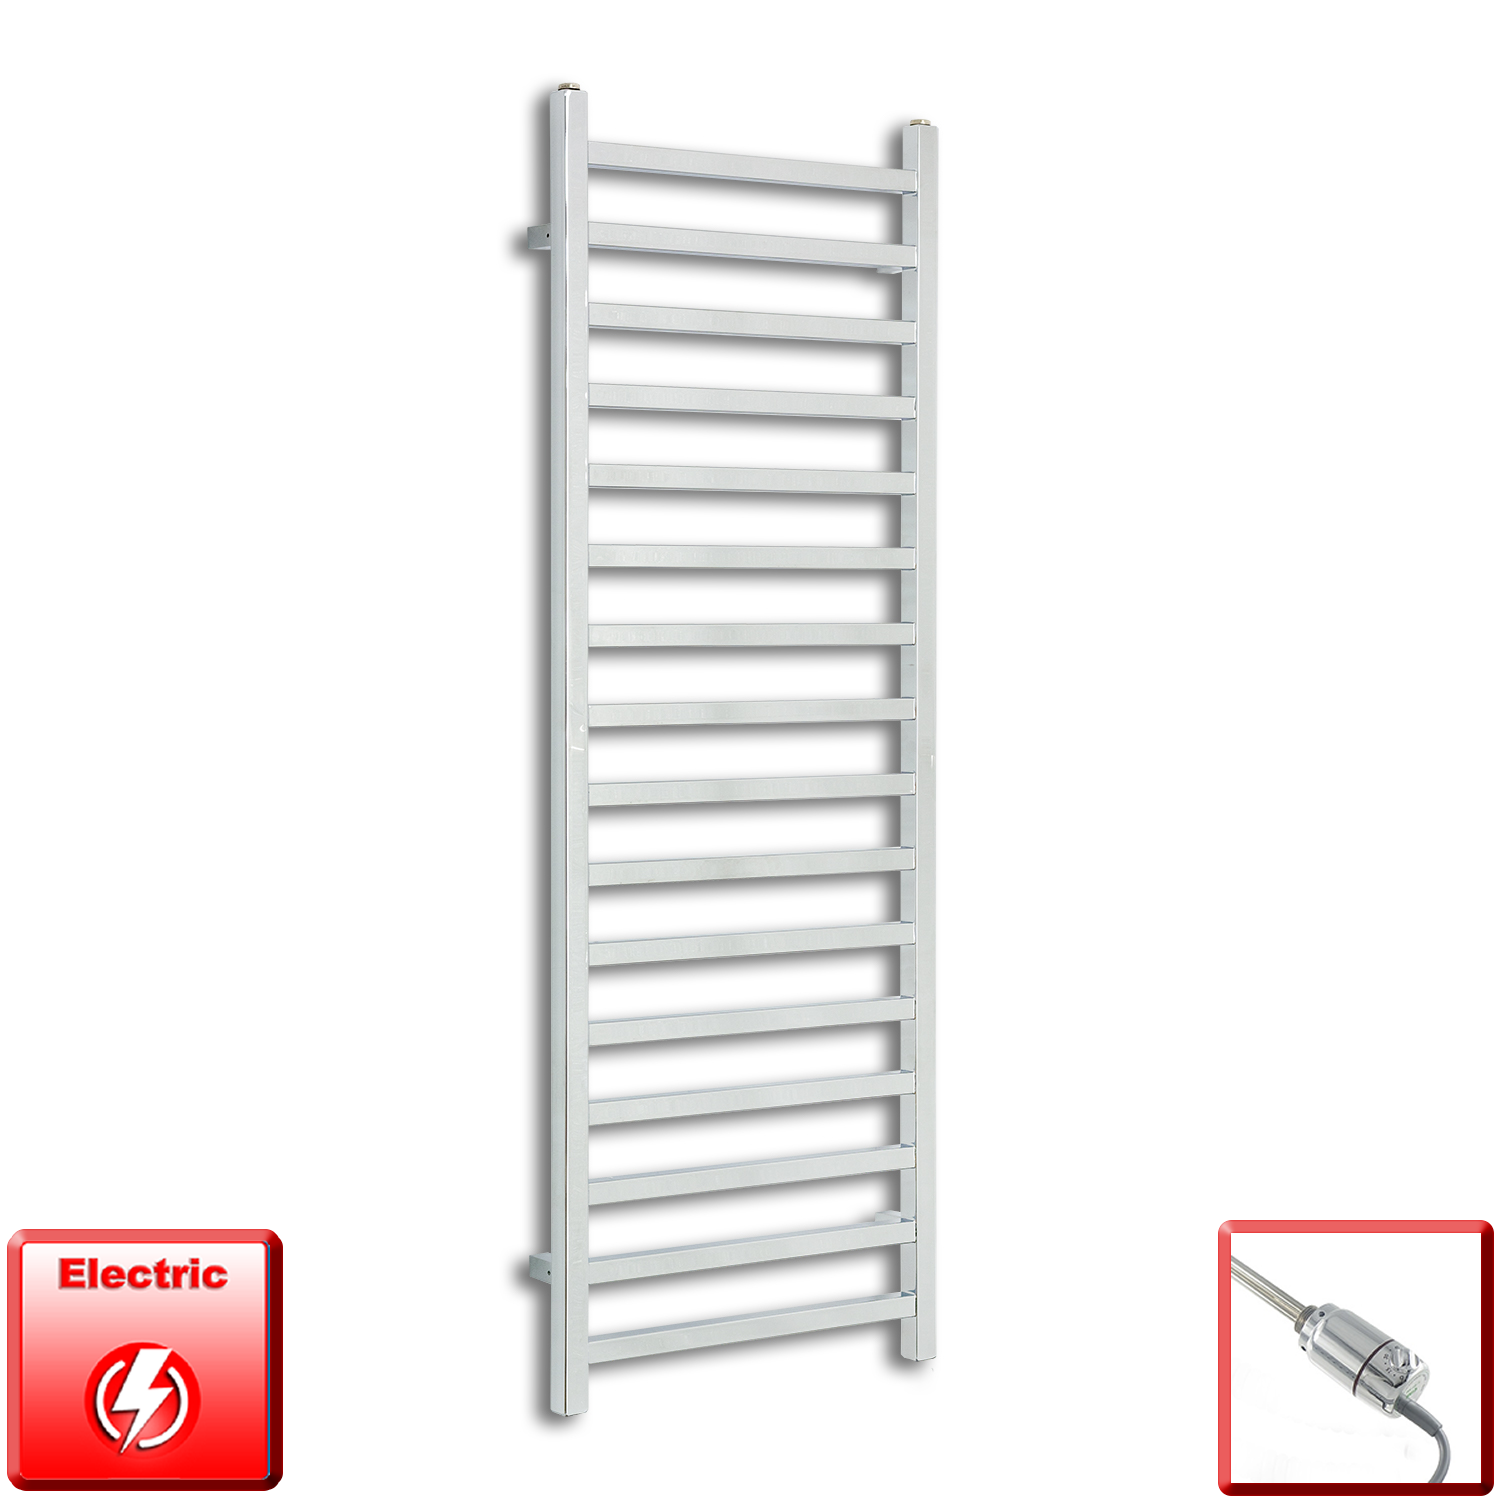 500mm Wide 1400mm High Pre-Filled Chrome Electric Towel Rail Radiator With Thermostatic GT Element